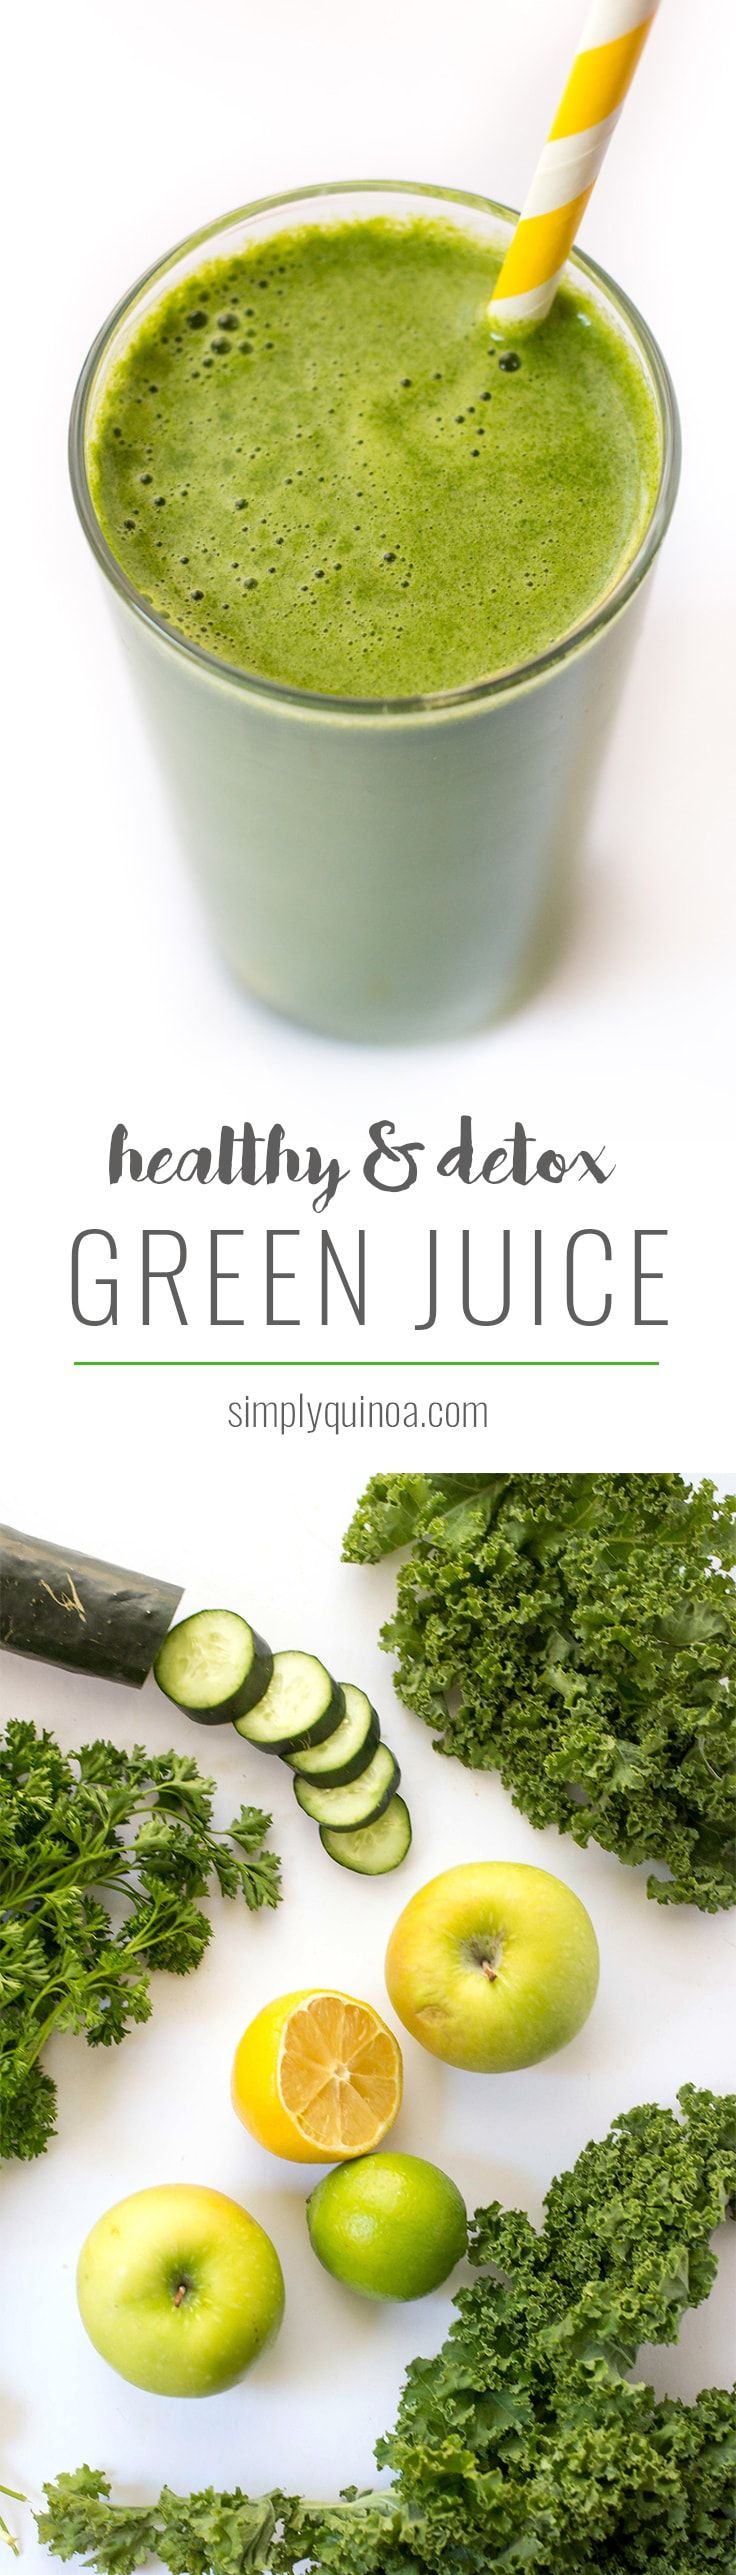 Healthy & Detoxifying Green Juice -- made with kale, romaine, lemon, apple and ginger!